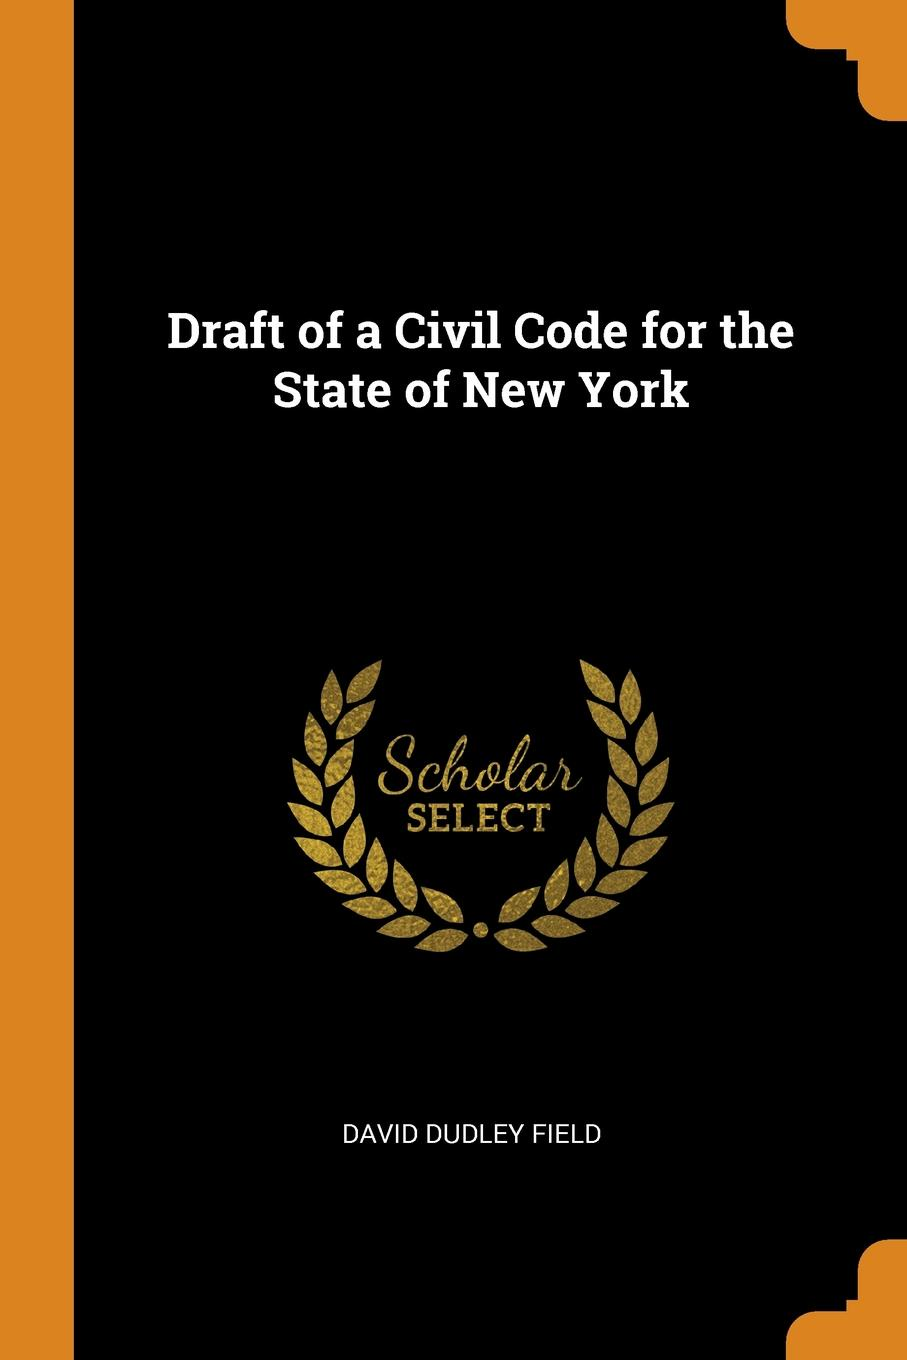 Draft of a Civil Code for the State of New York. David Dudley Field